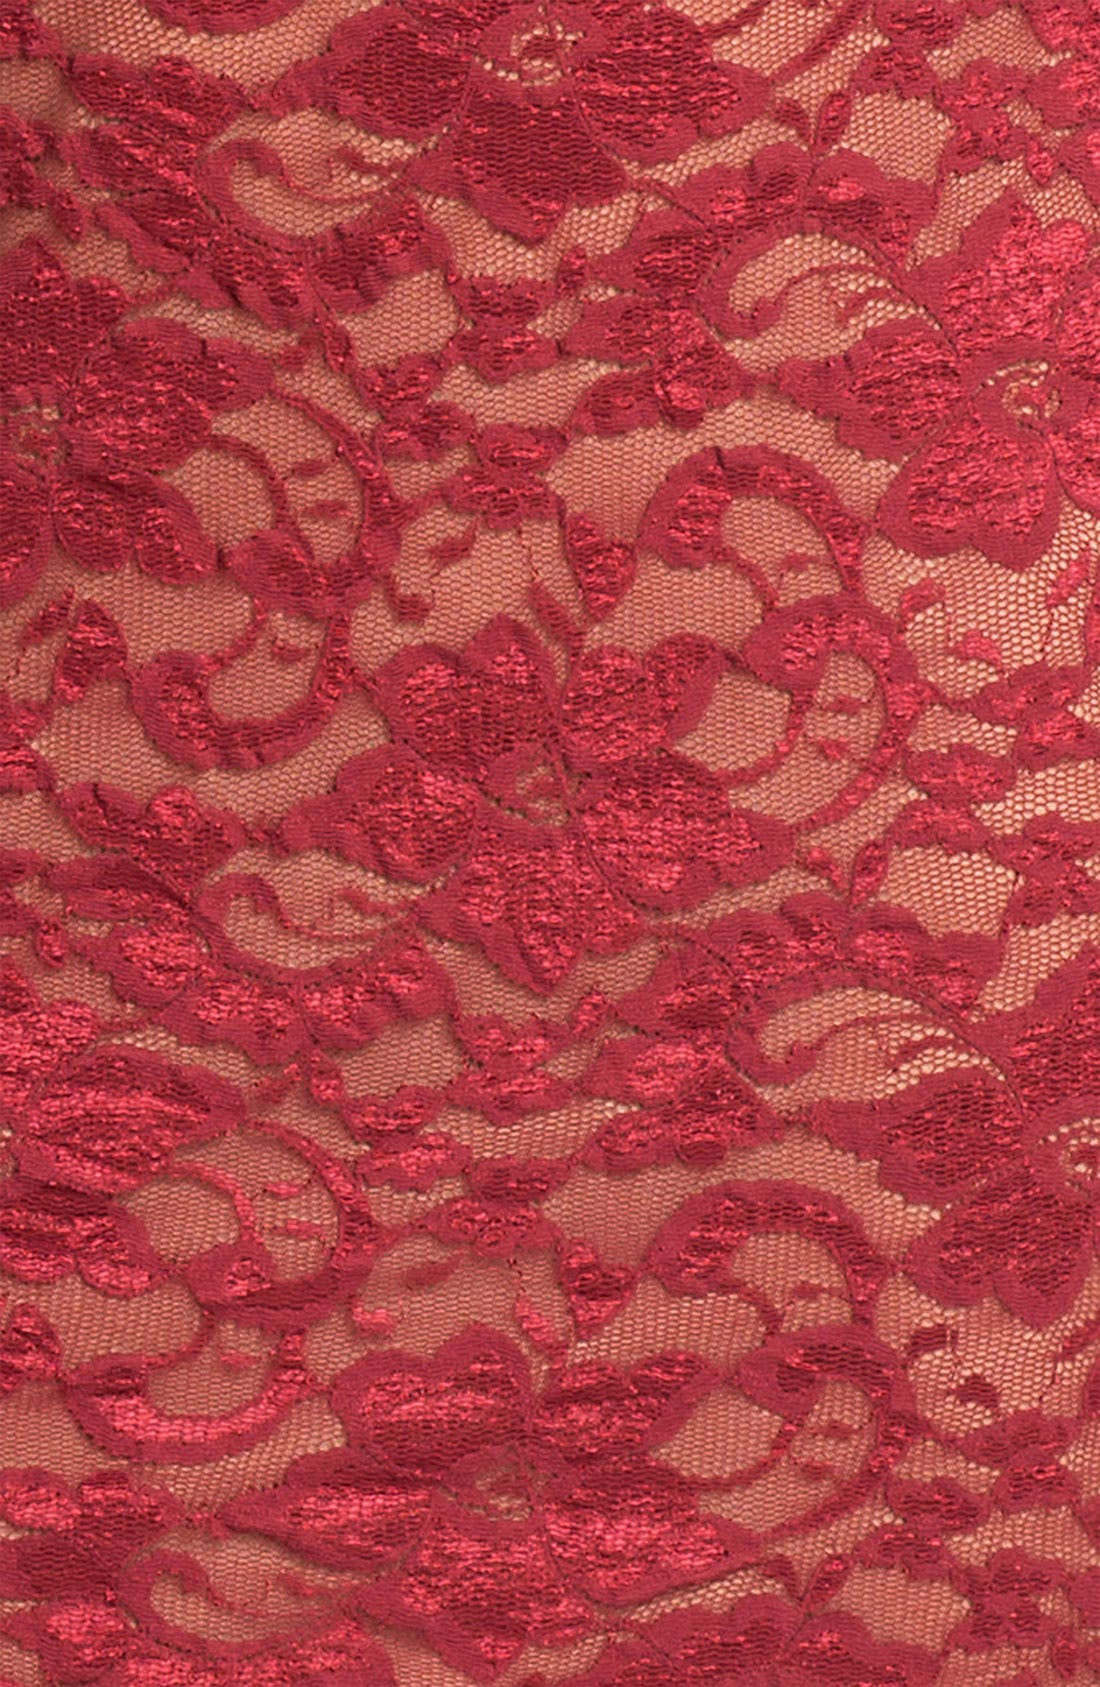 Lace Overlay Dress,                             Alternate thumbnail 9, color,